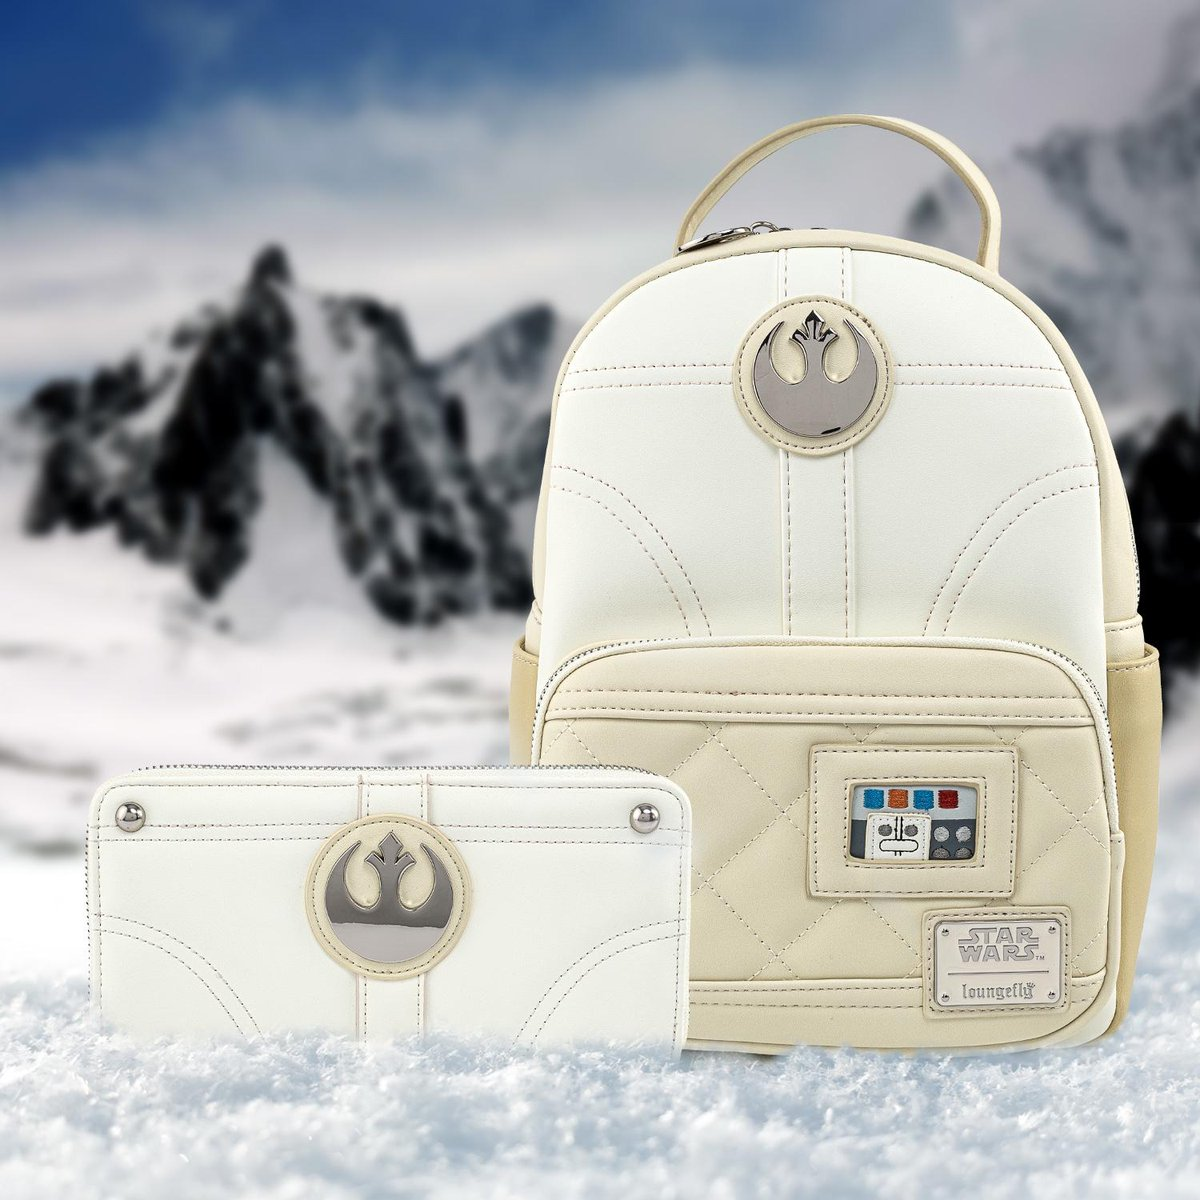 Head into the icy elements of Hoth with this collection inspired by the iconic Princess Leia. Now available on bit.ly/3kFEkHB! ❄️🧊❄️ #Loungefly #StarWars #Hoth